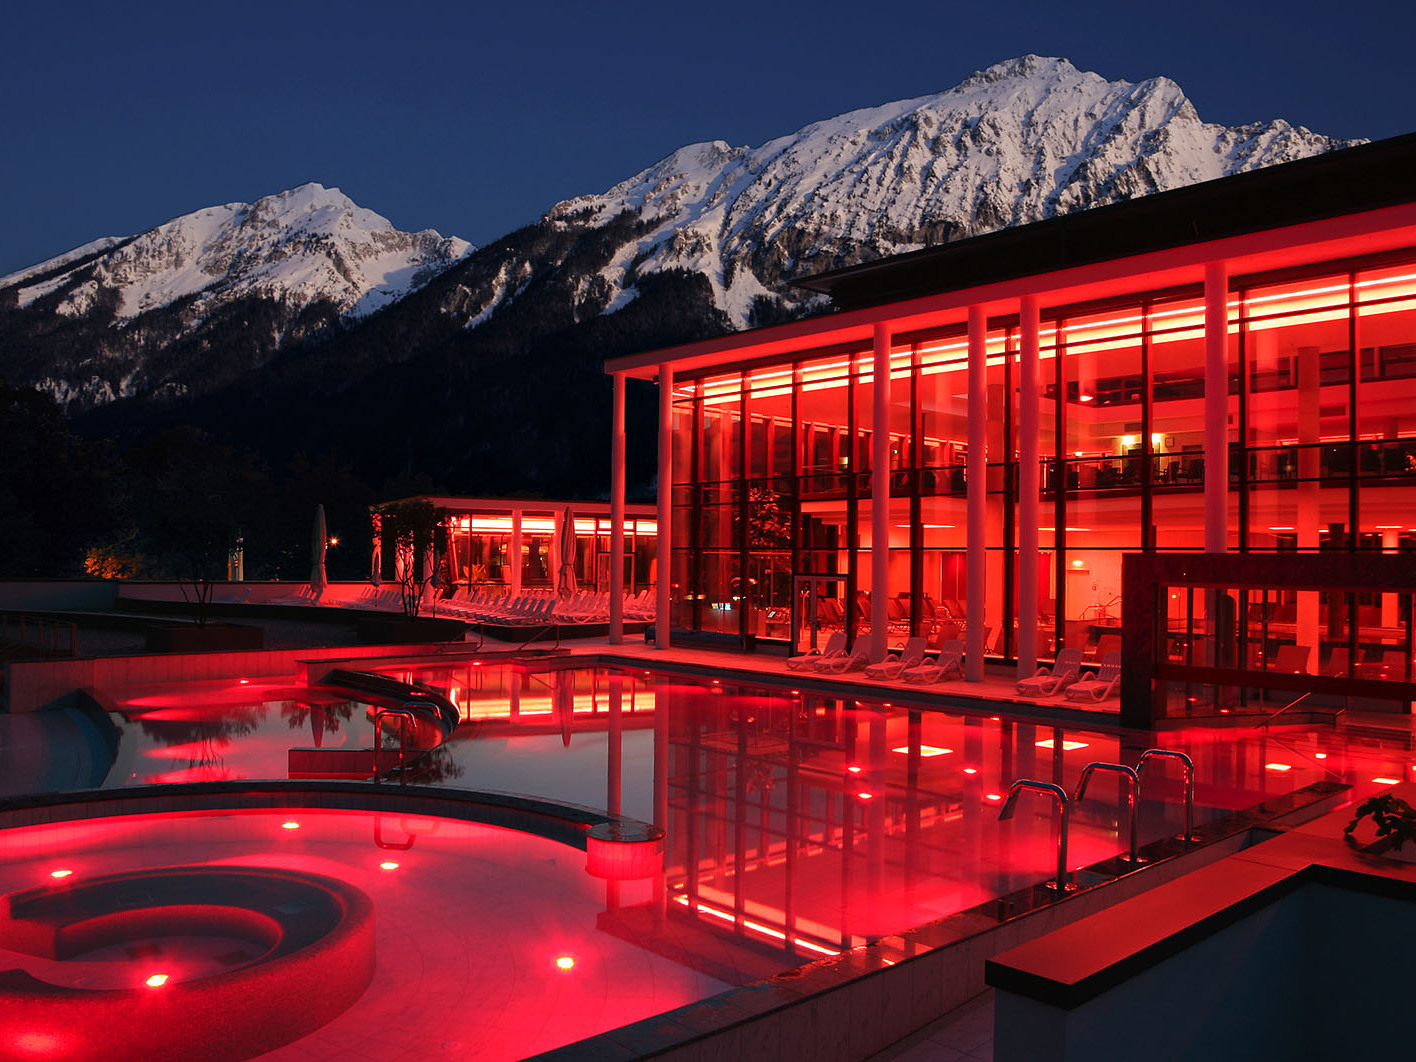 Rupertus-Therme in Bad Reichenhall